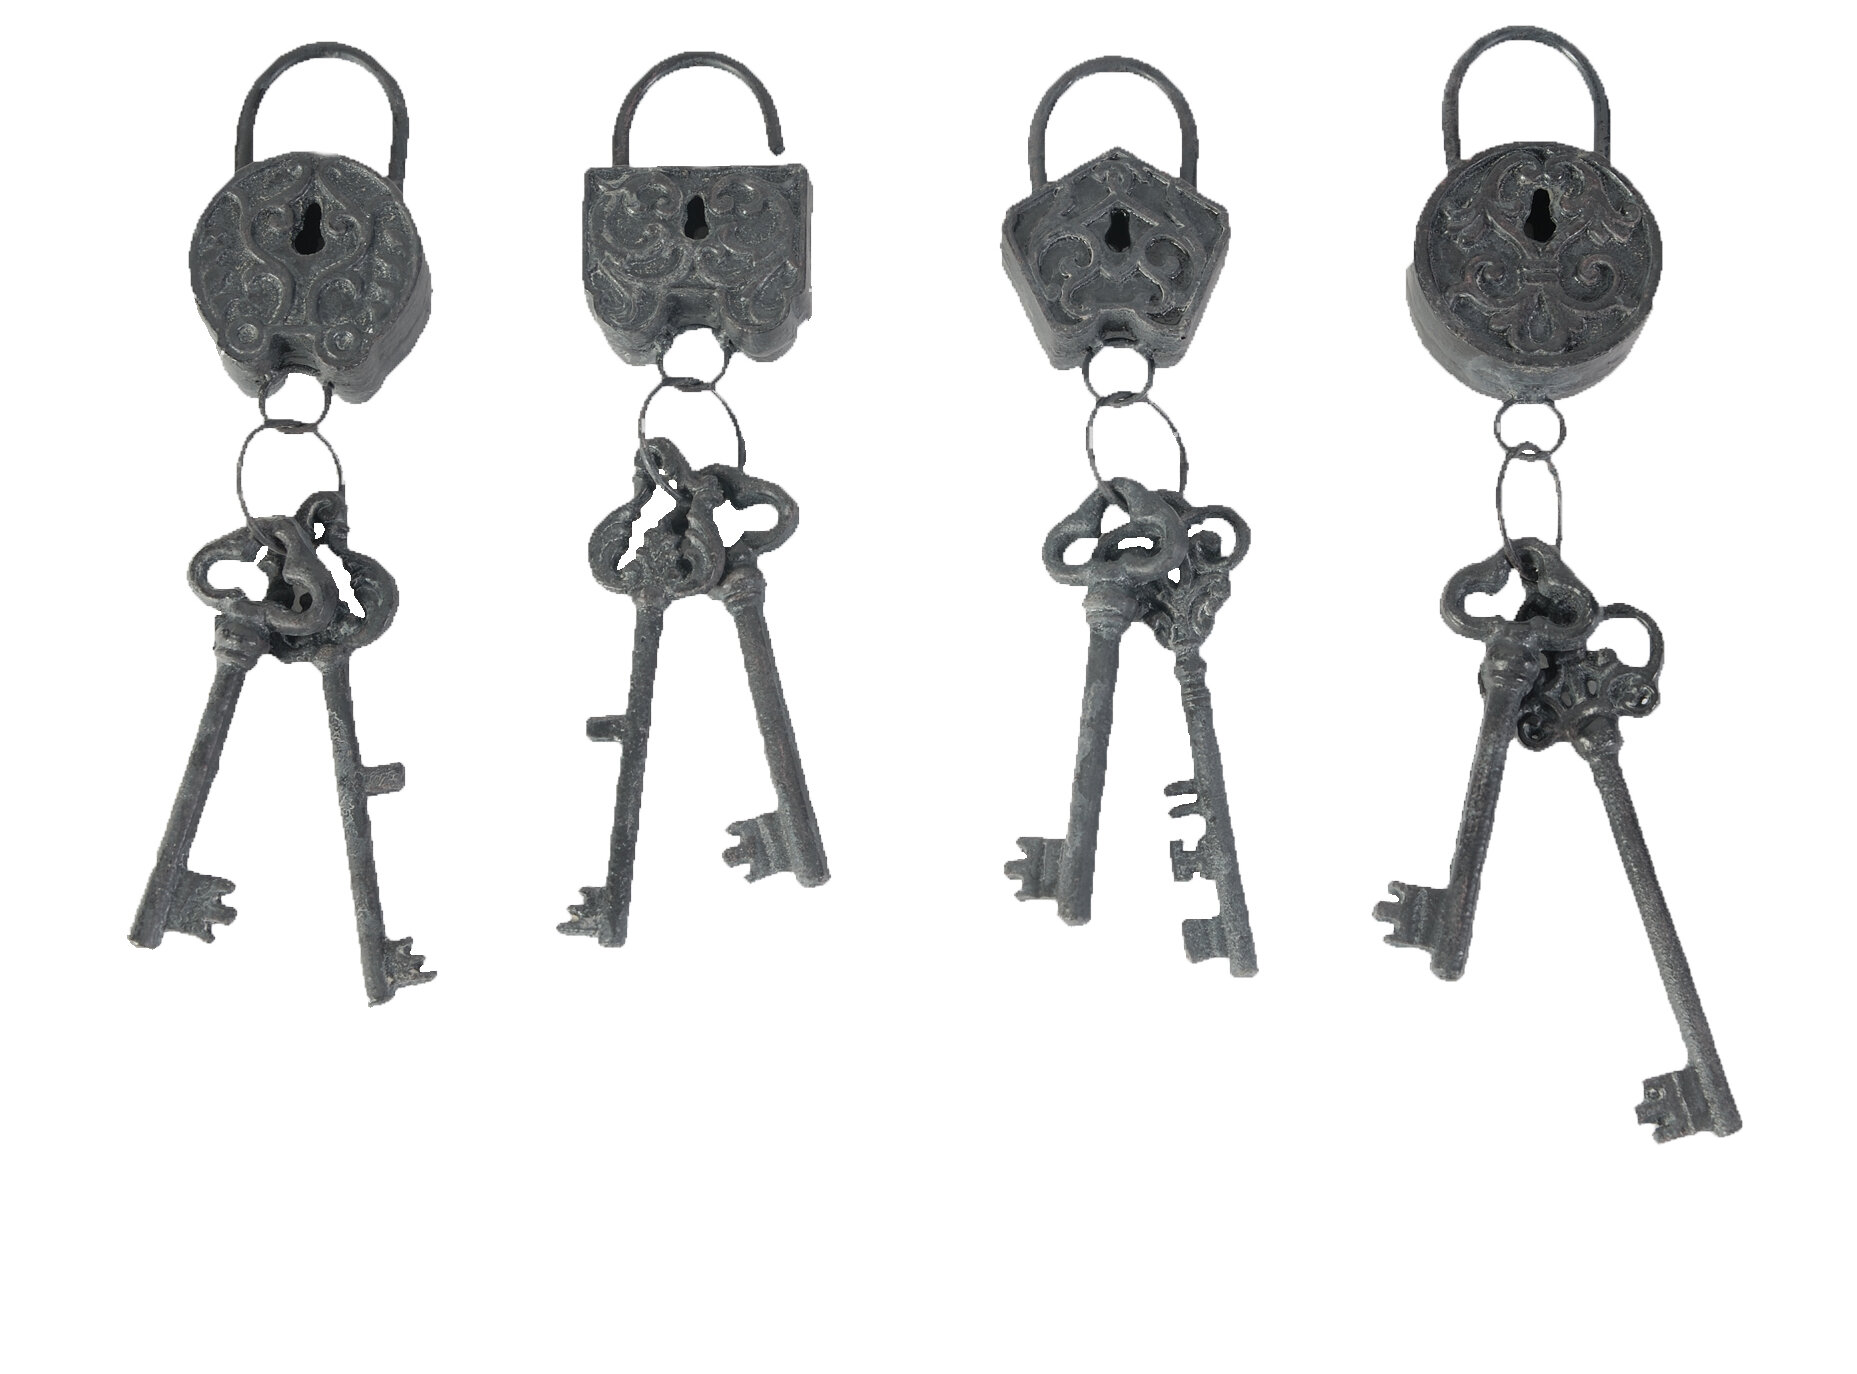 4 Piece Decorative Lock And Key Sets Wall Décor Intended For 4 Piece Metal Wall Decor Sets (View 12 of 30)